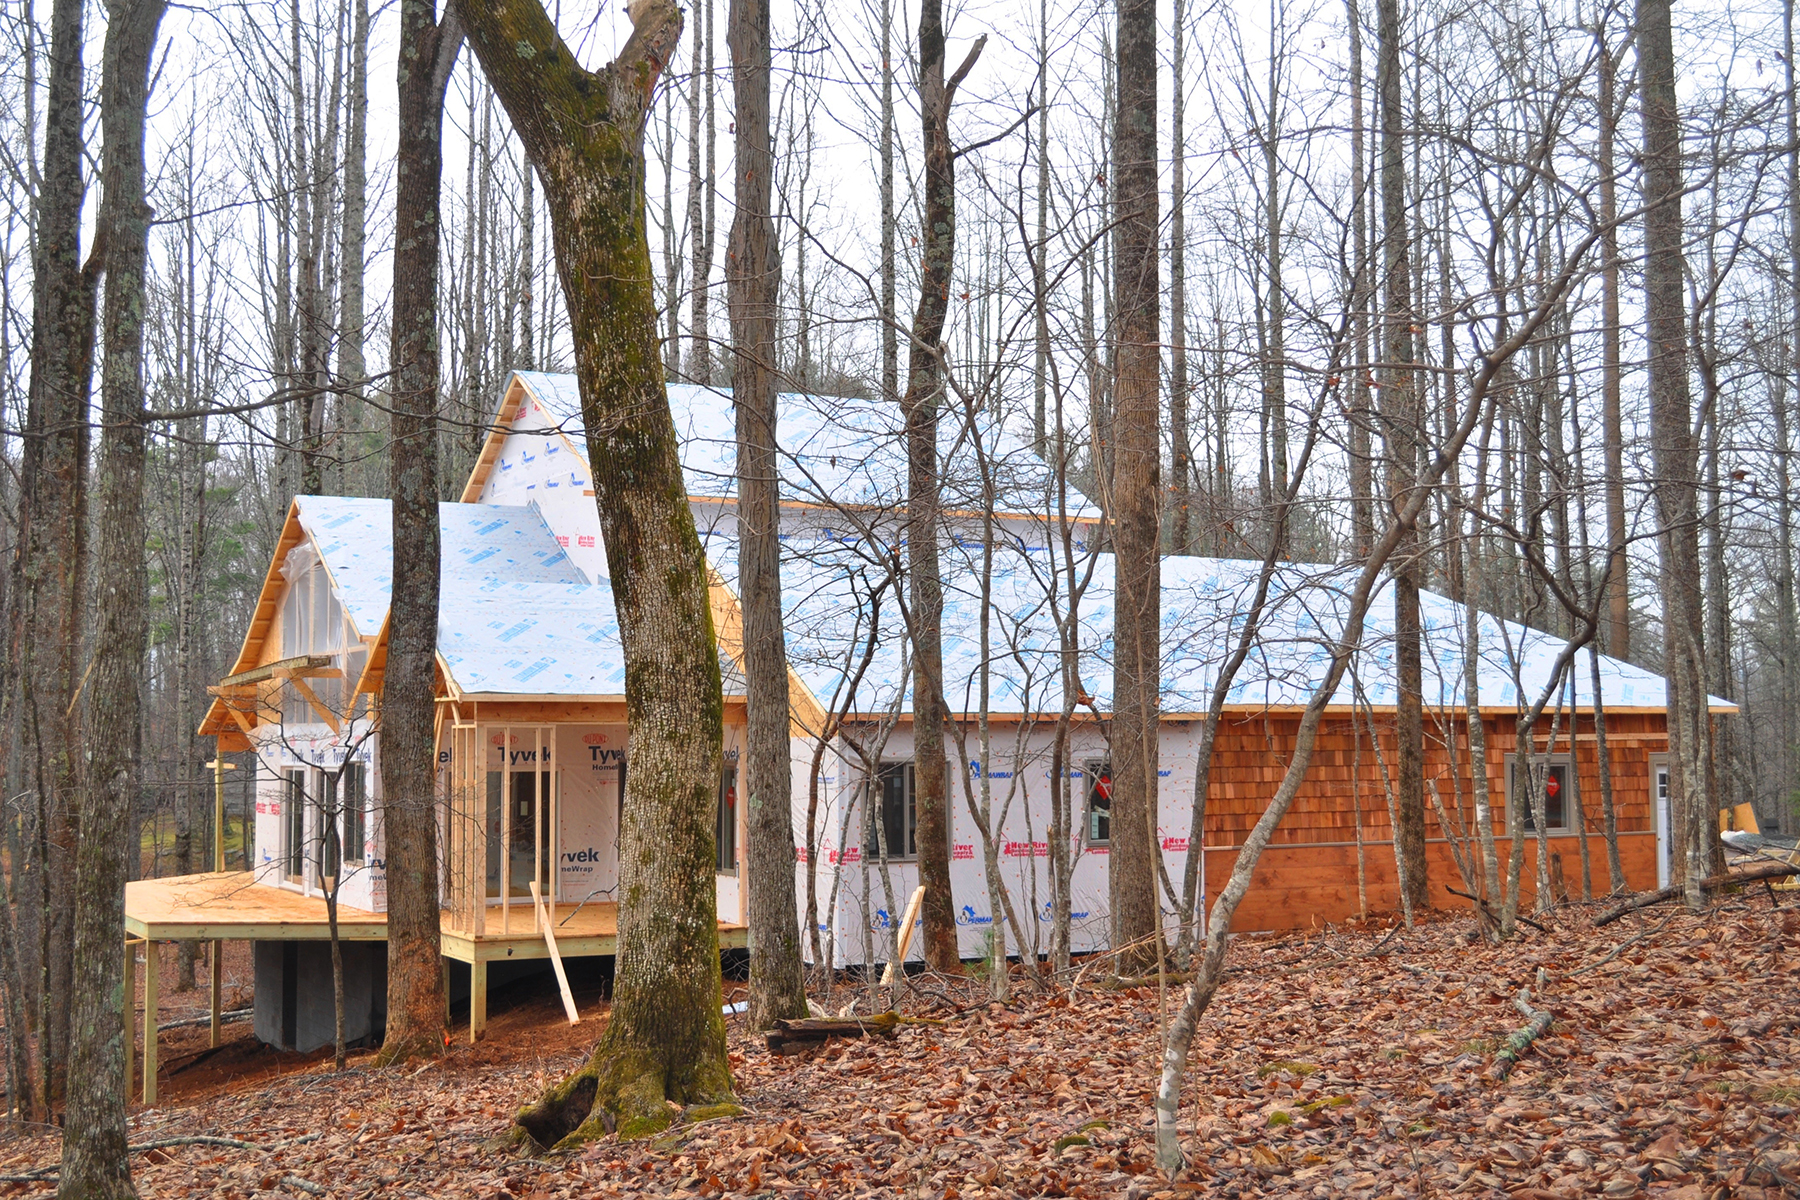 Single Family Home for Sale at BOONE - MOUNTAIN FOREST TBA Crystal Mountain Rd, Boone, North Carolina 28607 United States